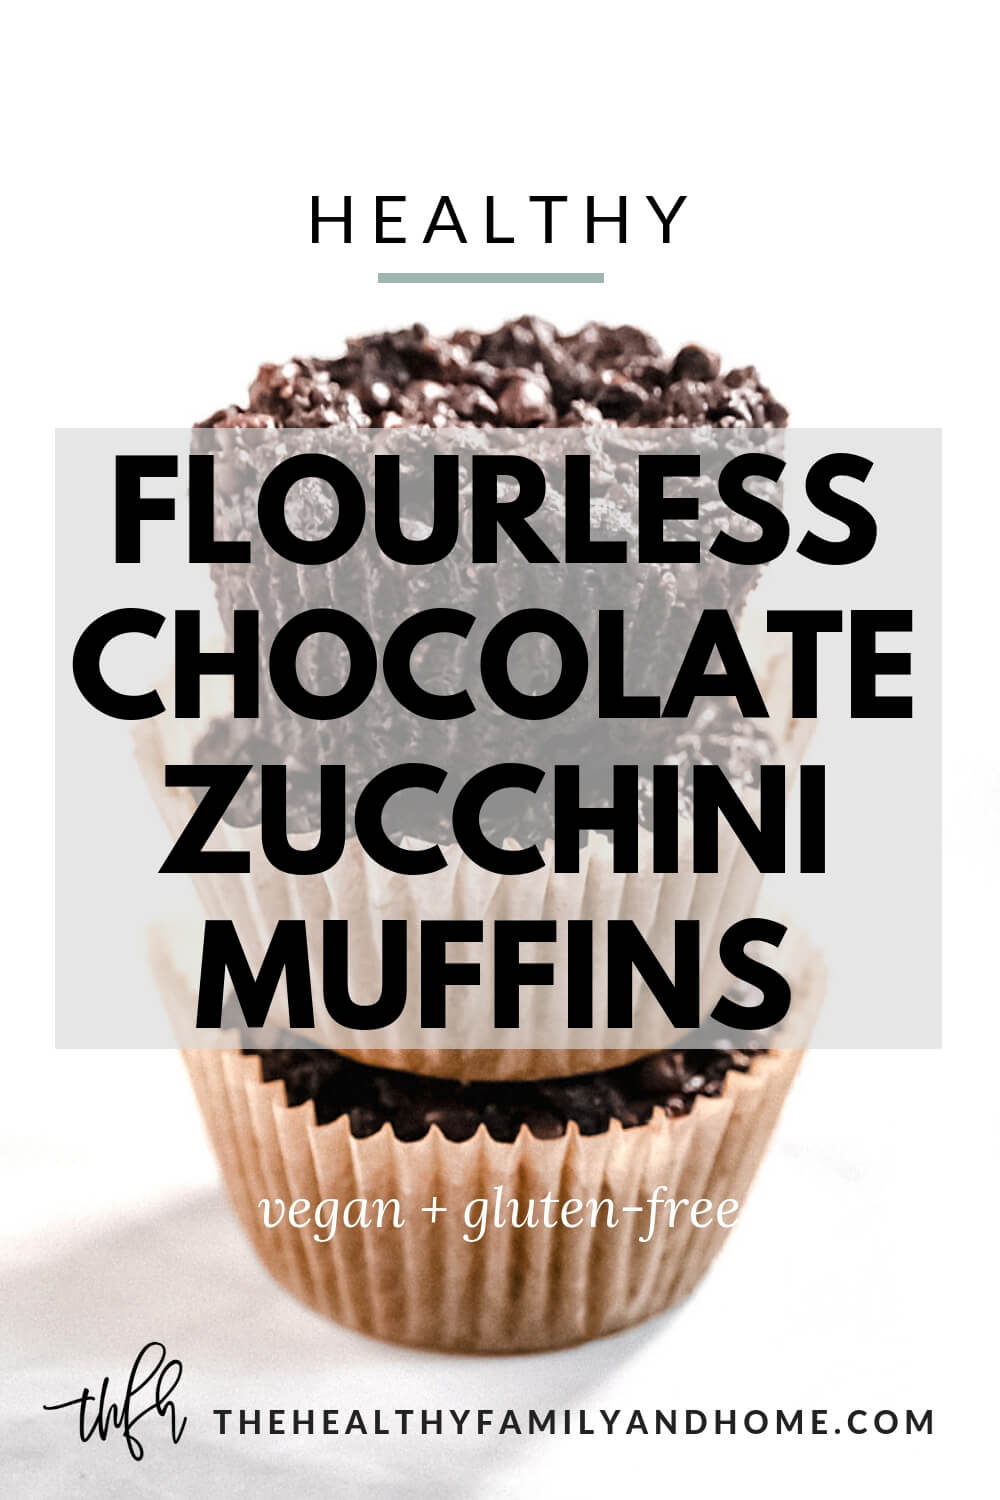 Stack of three Gluten-Free Vegan Flourless Chocolate Zucchini Muffins in paper muffin cups on a white surface